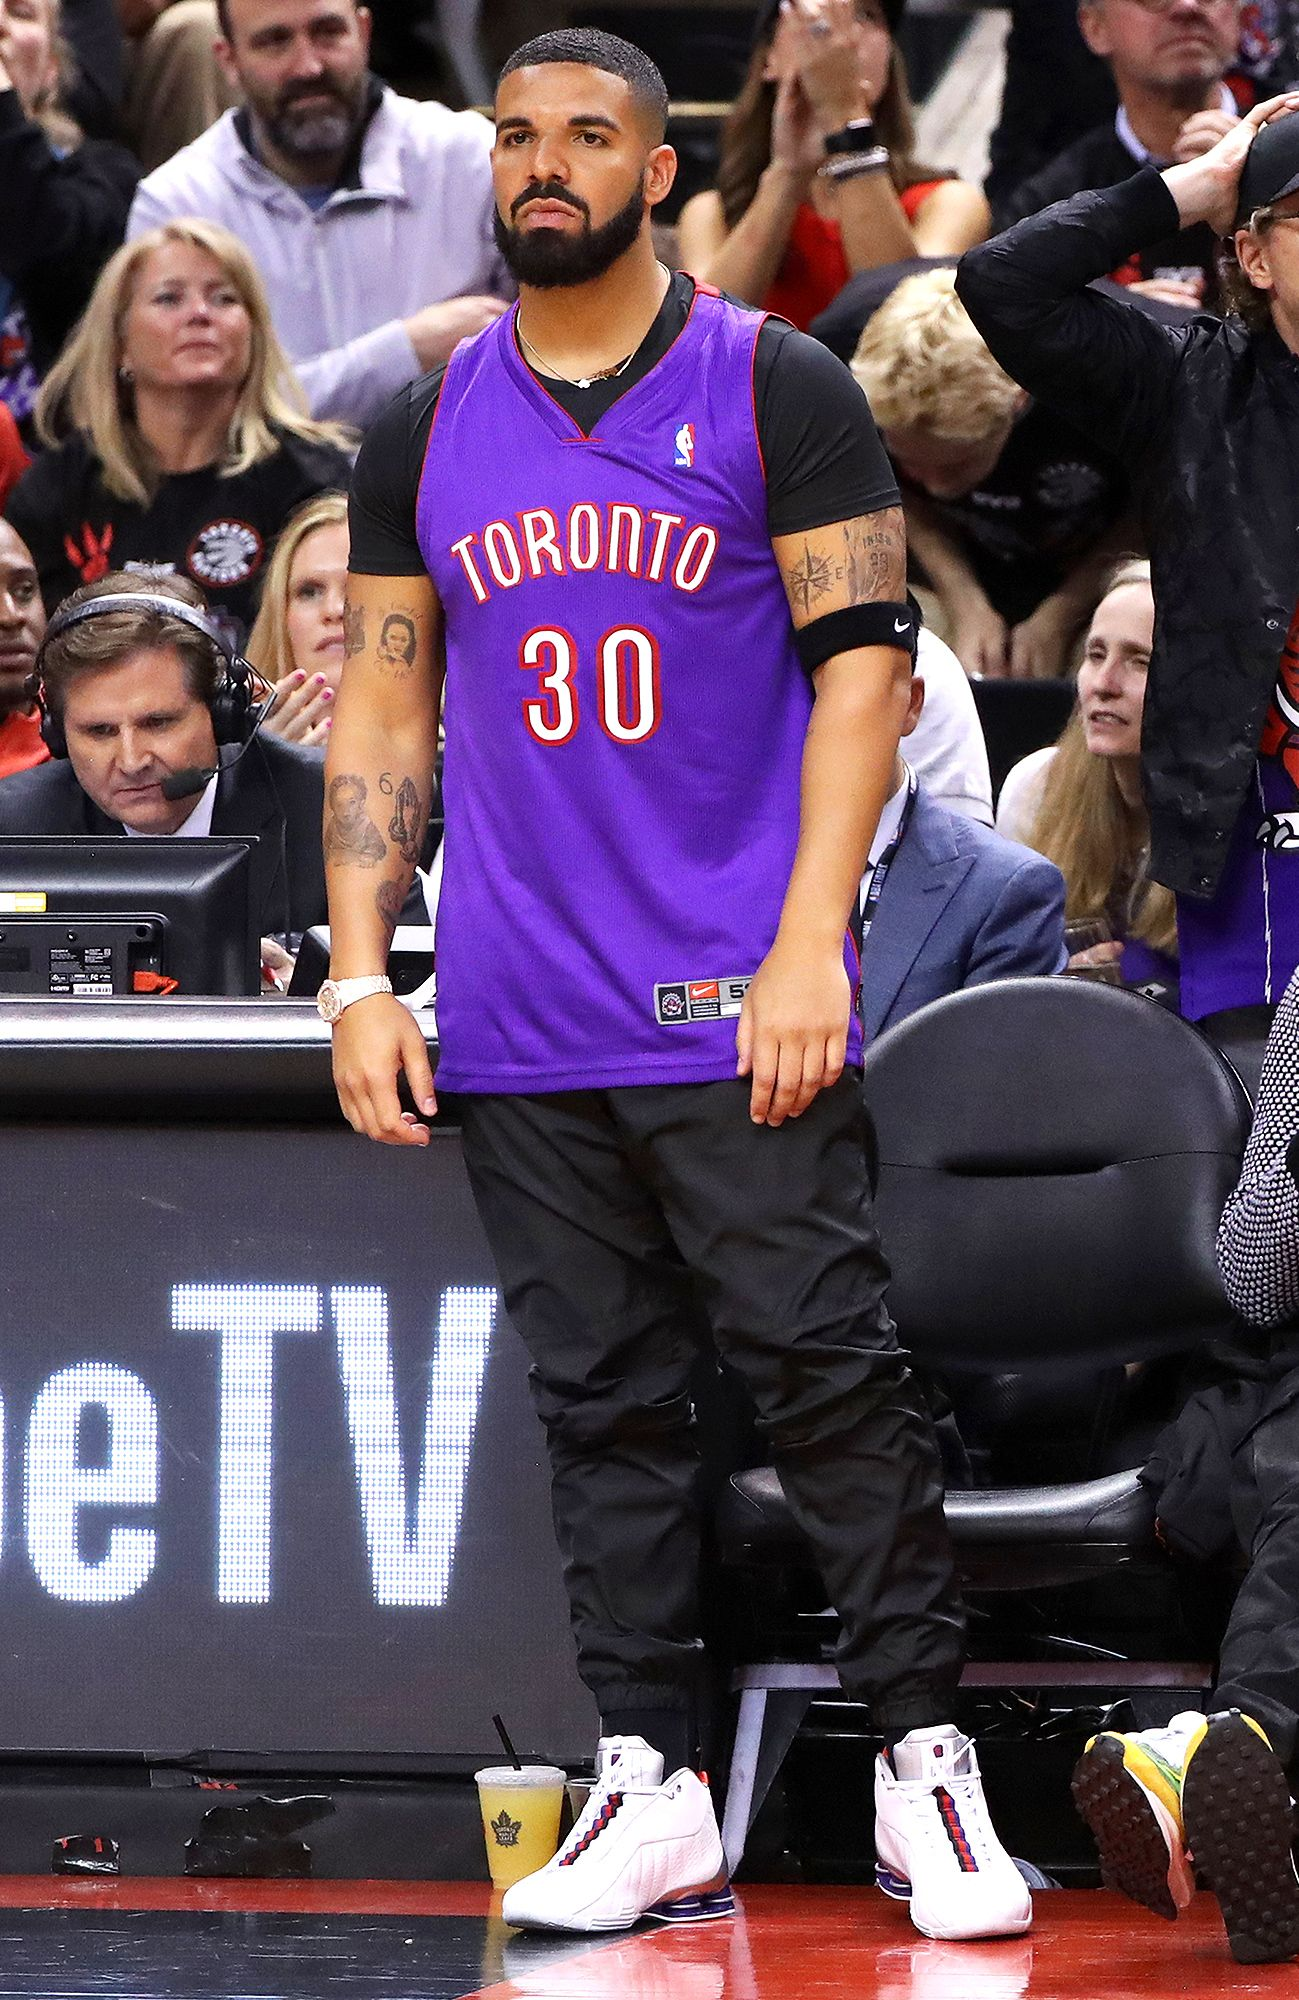 THE NBA TALKED TO DRAKE ABOUT COURTSIDE BEHAVIOR PEOPLE